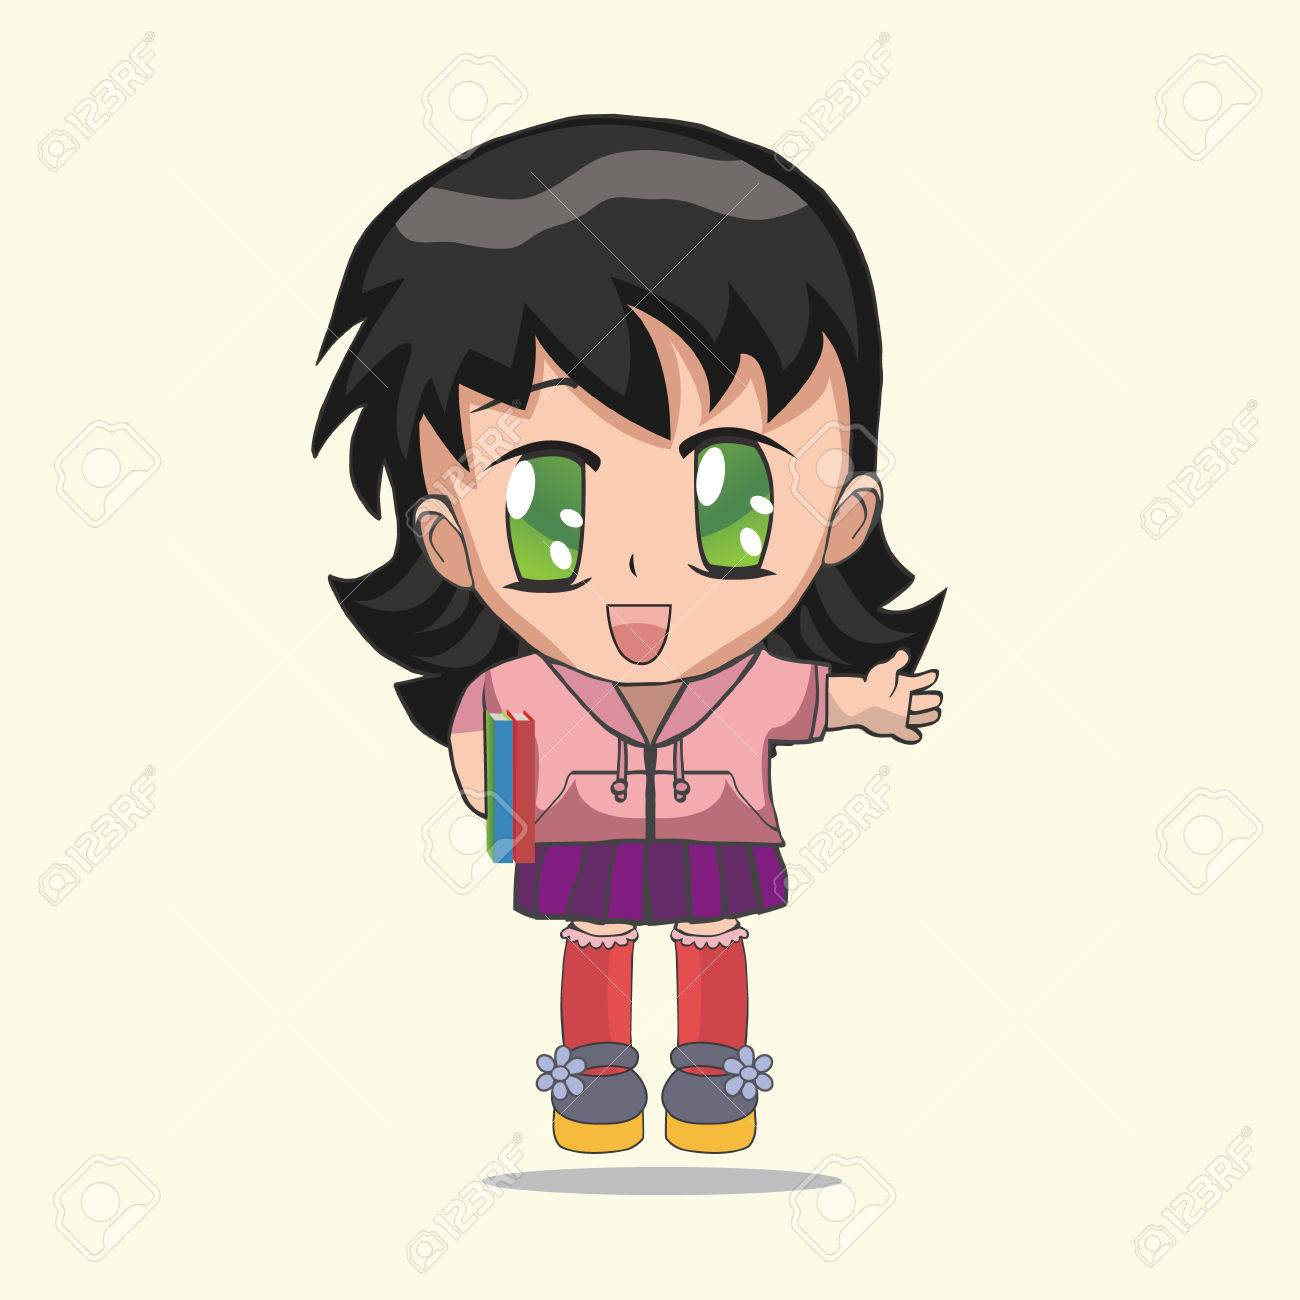 Cute anime chibi little girl anime girl with a book on a white background cartoon